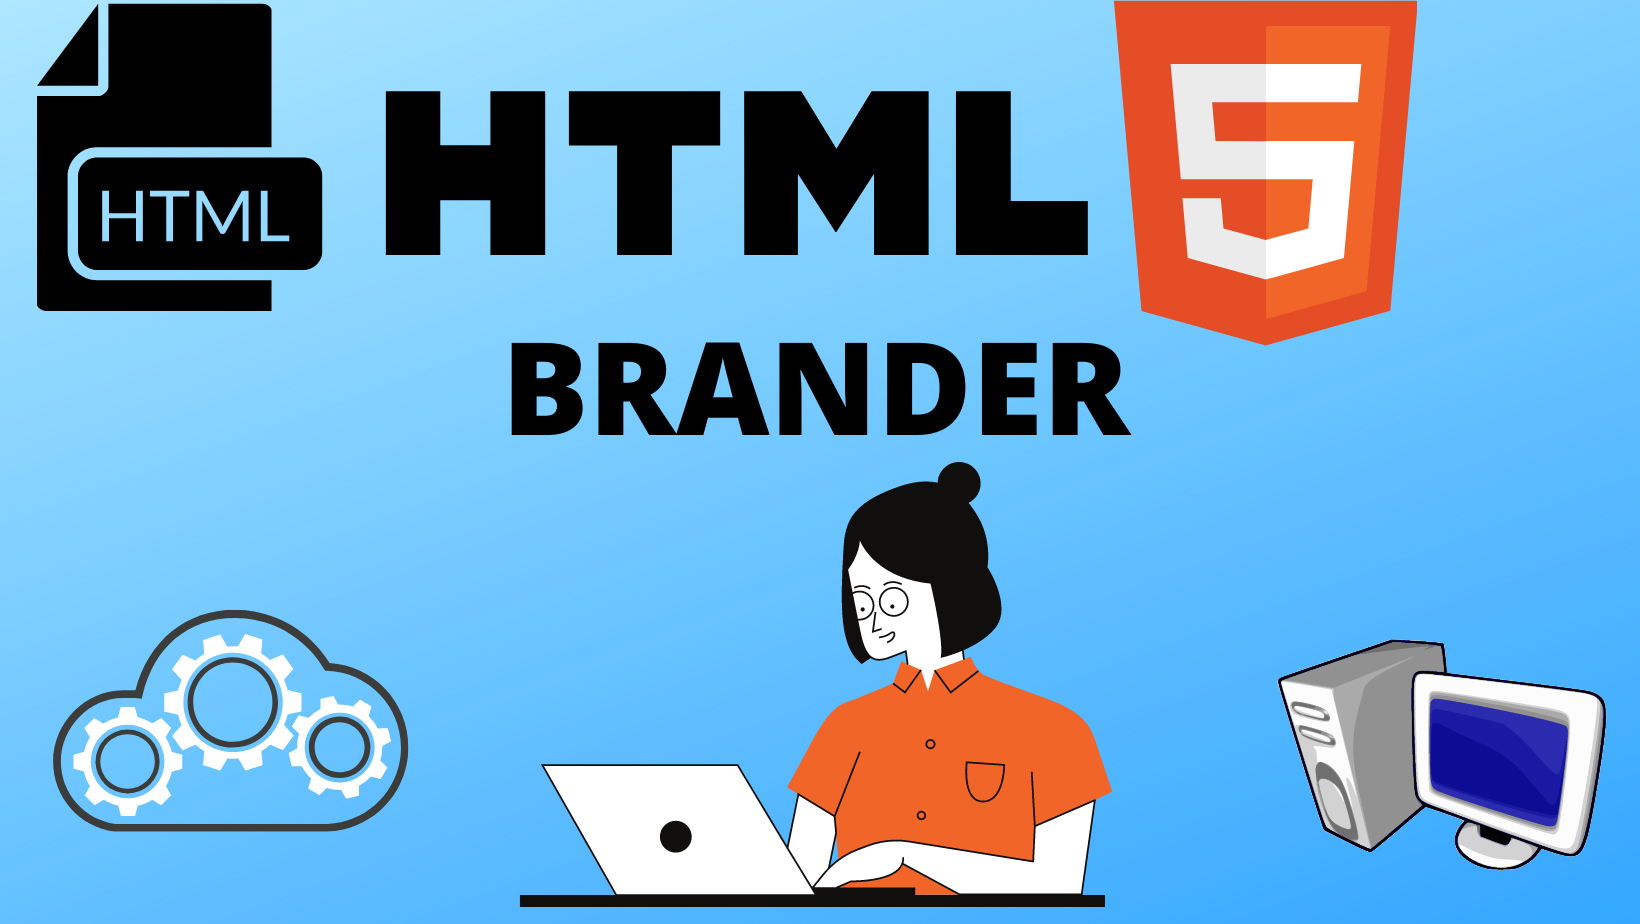 HTML BRANDER can help you to create branded websites for affiliates in five easy steps